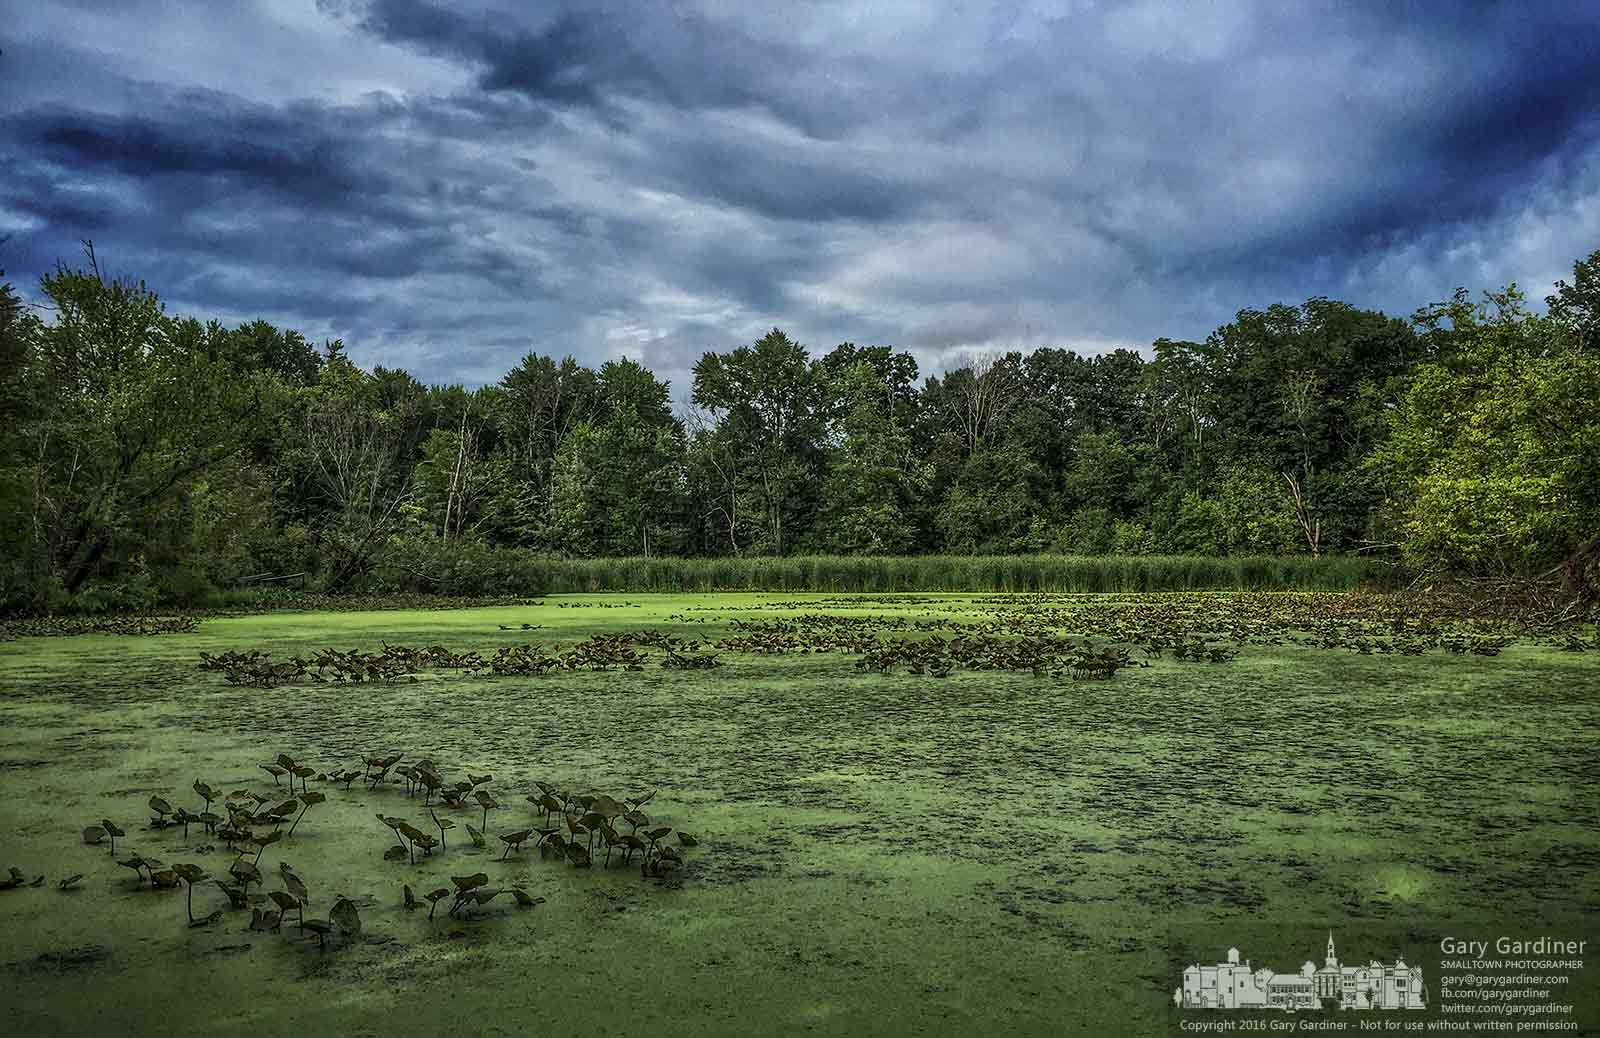 The waters at Boyer Nature Preserve are still as a late afternoon storm moves to the east after passing by the Westerville park. My Final Photo for Aug. 14, 2016.